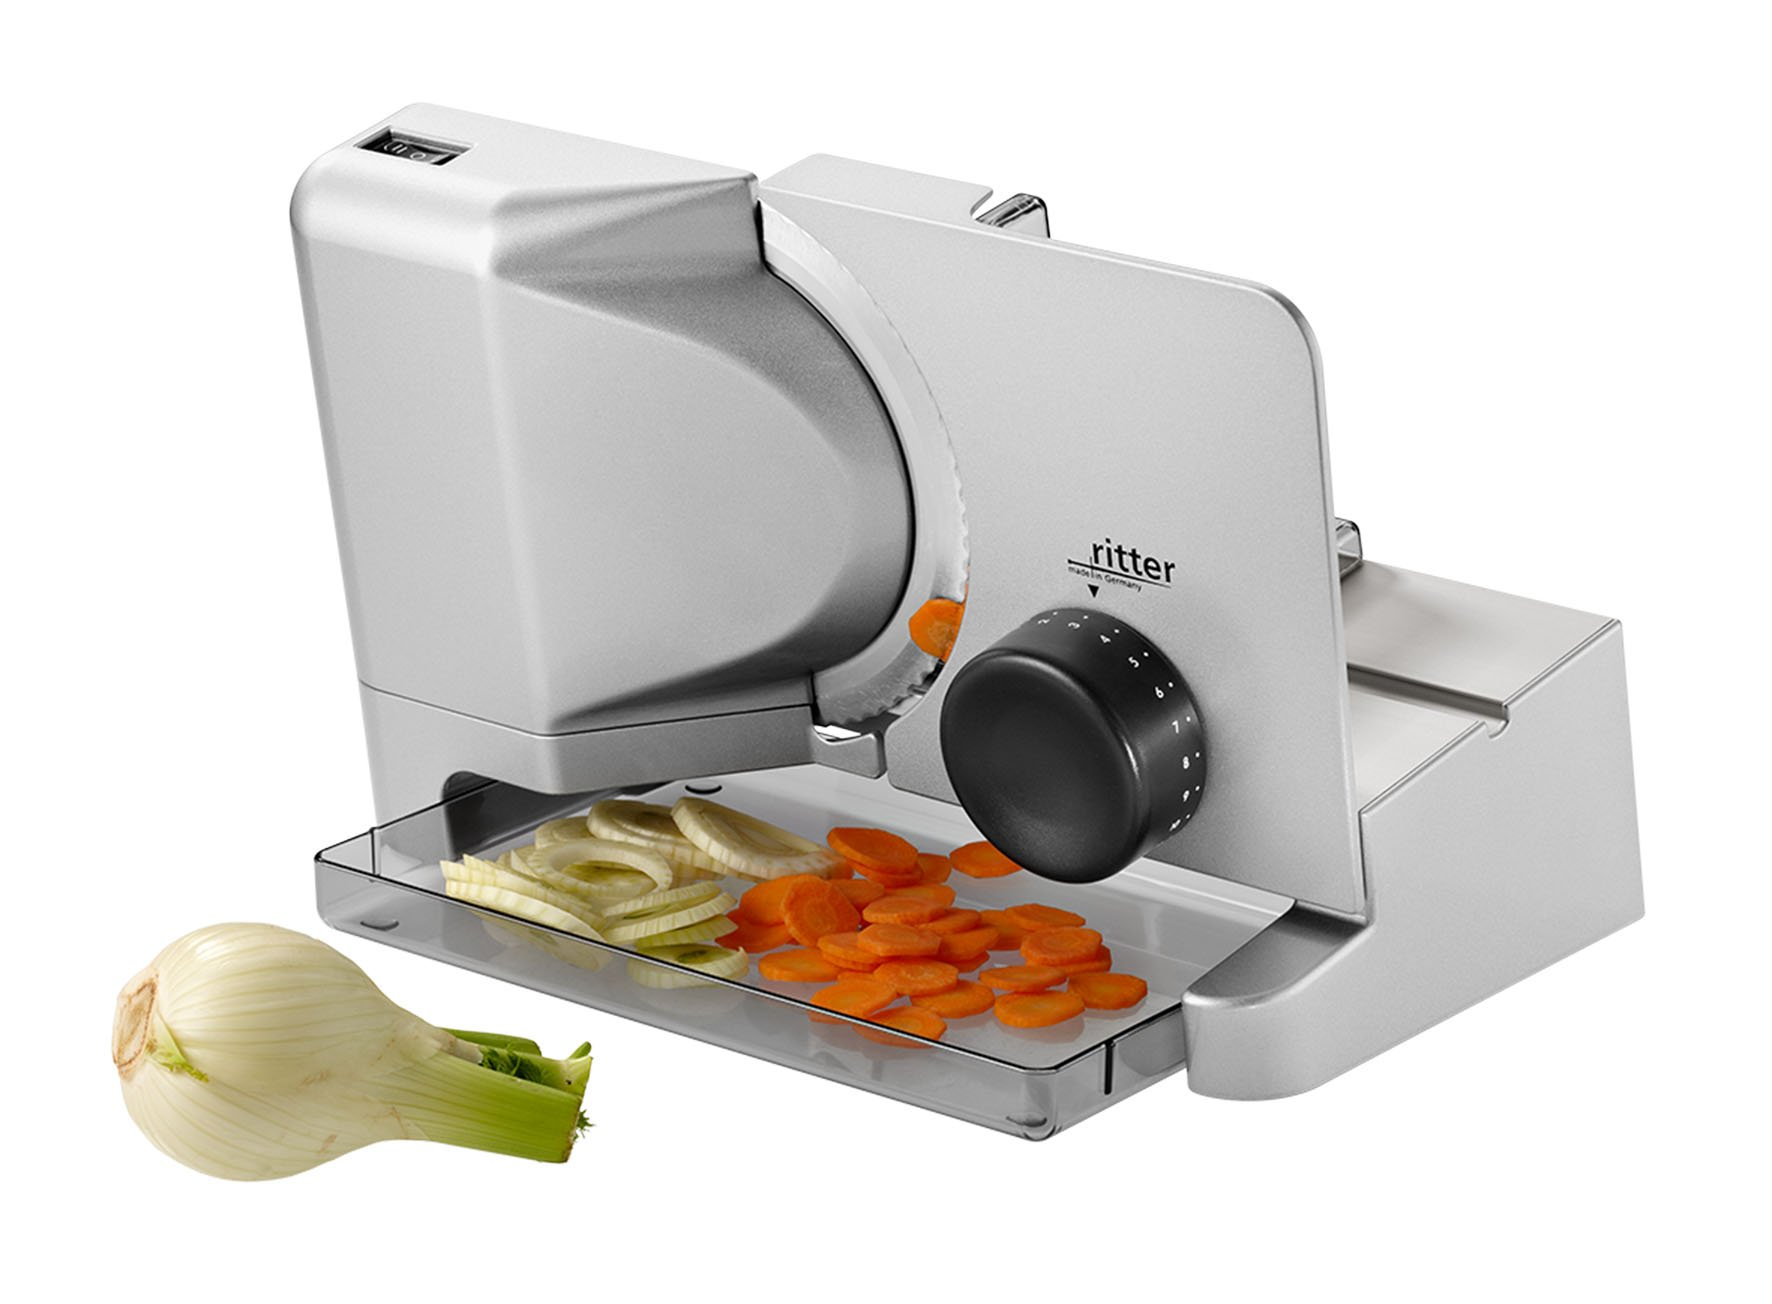 71tR1ybBiuL - ritter E 16 Electrical Food Slicer with eco Motor, Made in Germany, Metal, 65 W